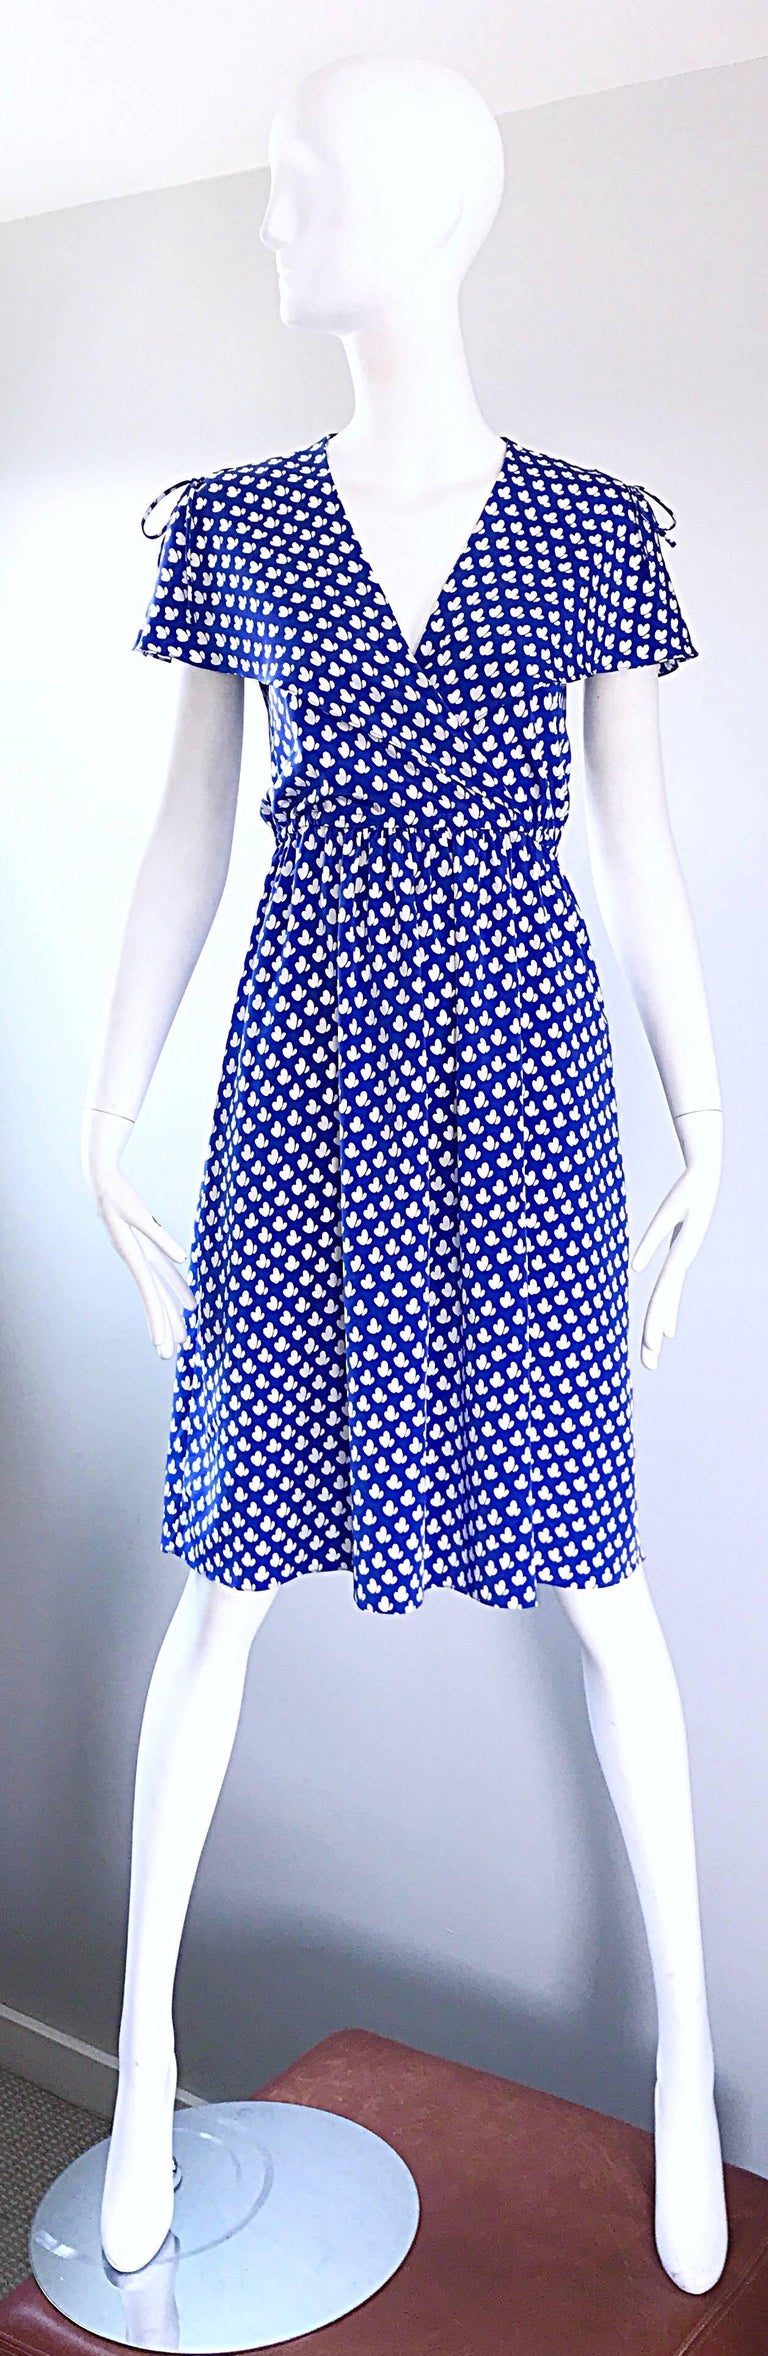 Vintage Pierre Cardin 1970s Blue + White Heart Print Flutter Sleeve 70s Dress In Excellent Condition For Sale In Chicago, IL